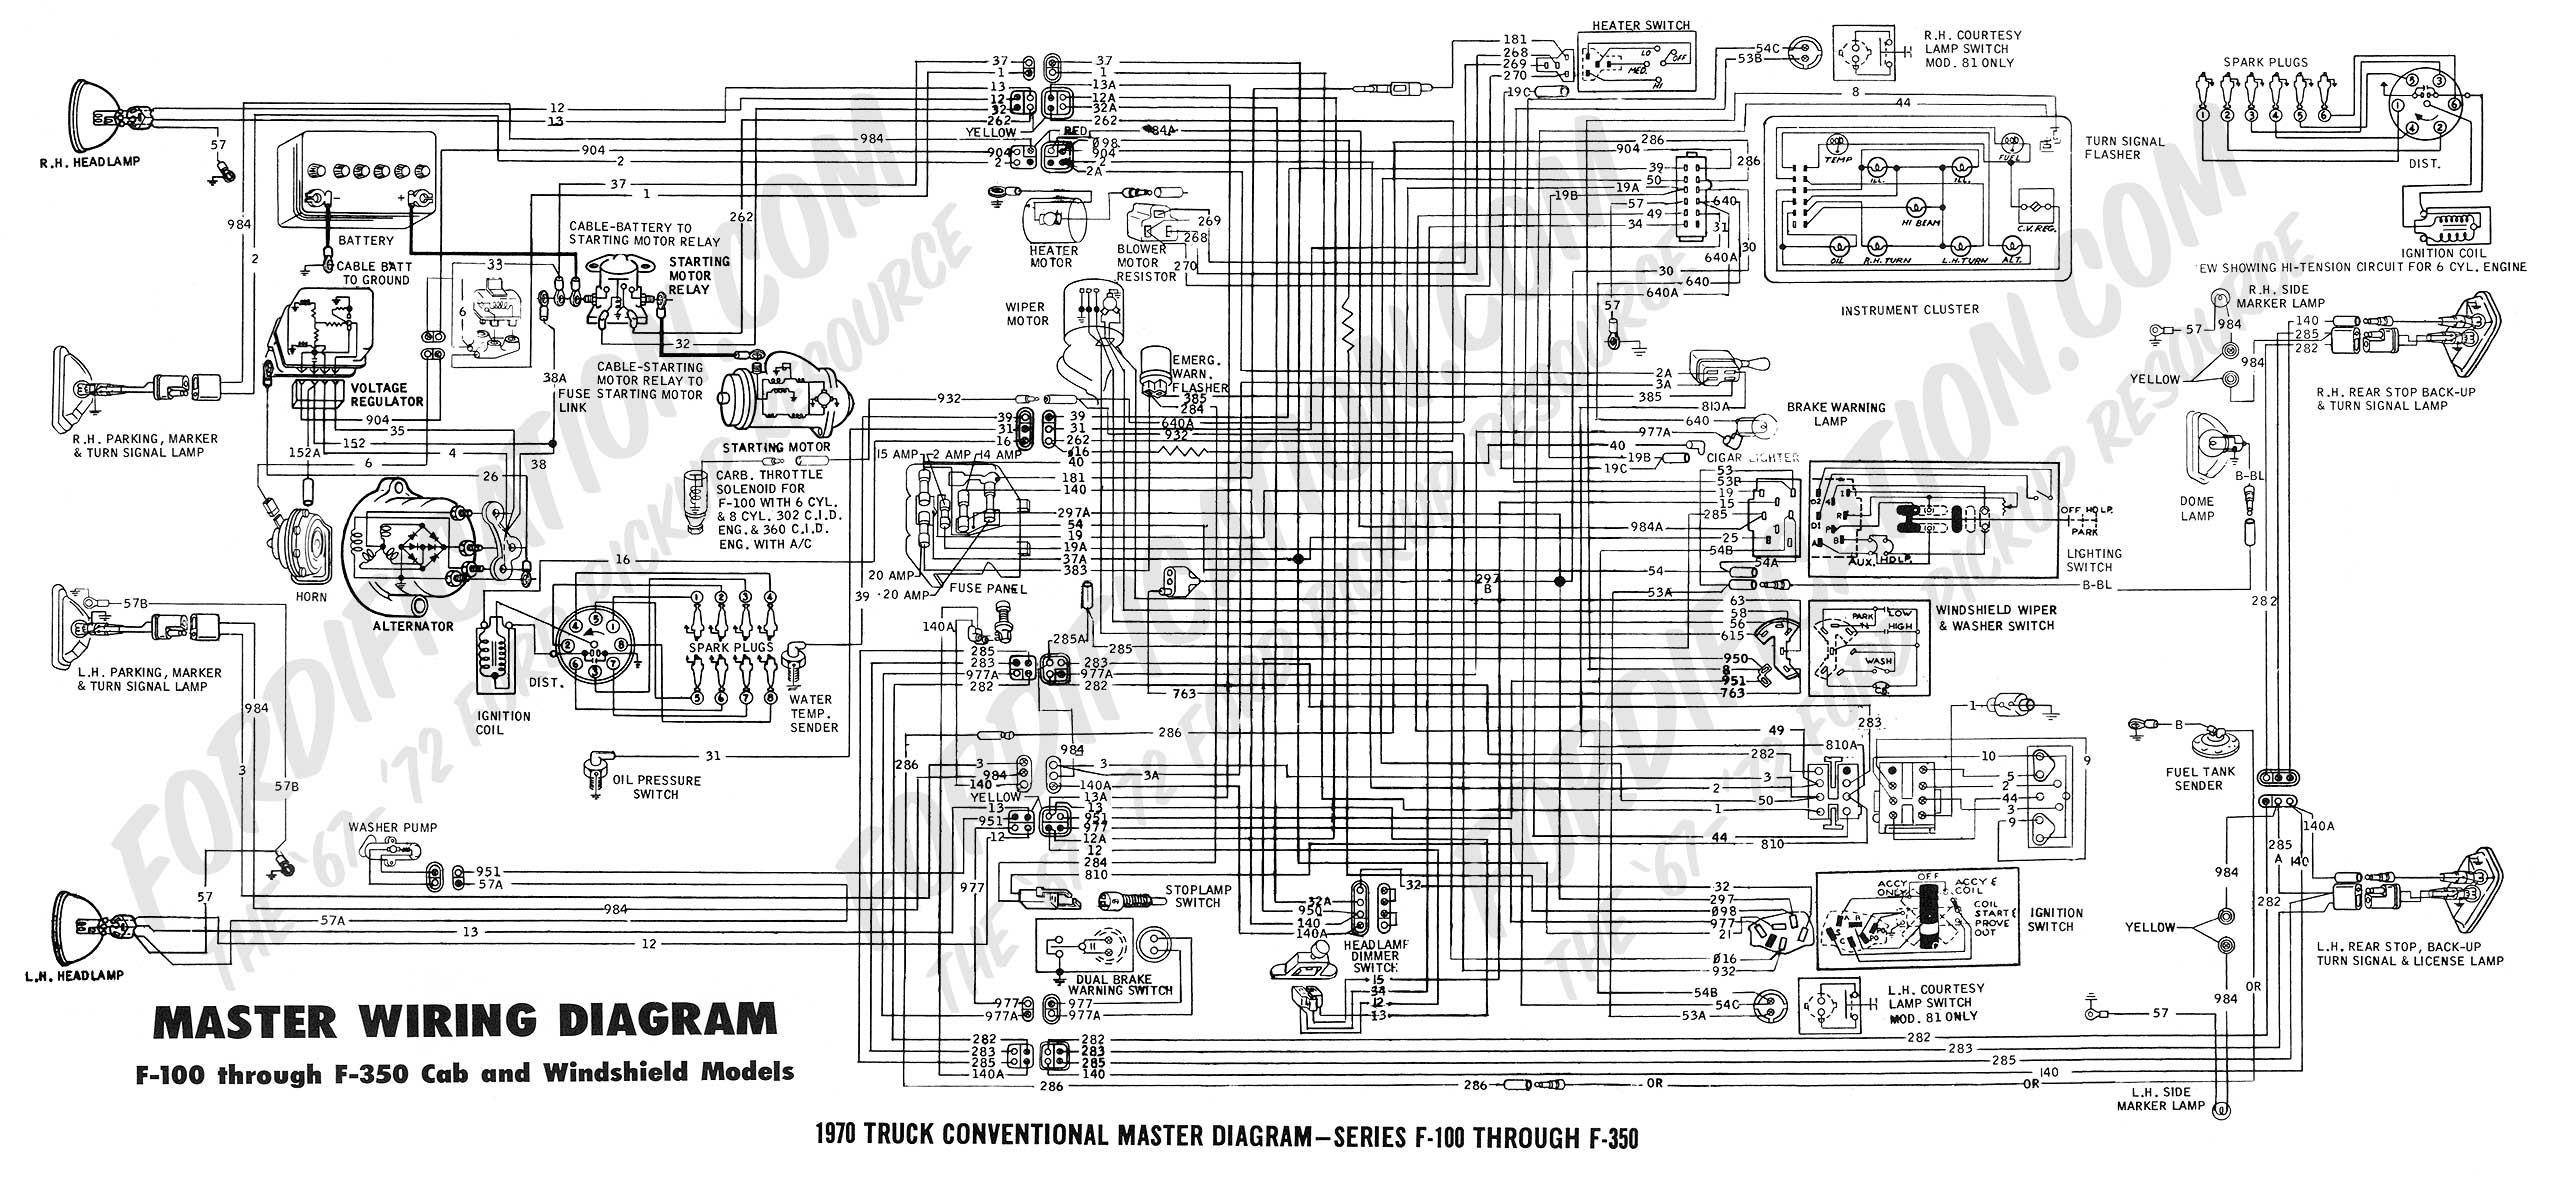 wiring diagram 70_master ford truck technical drawings and schematics section h wiring 1999 Ford Expedition Problems at gsmportal.co